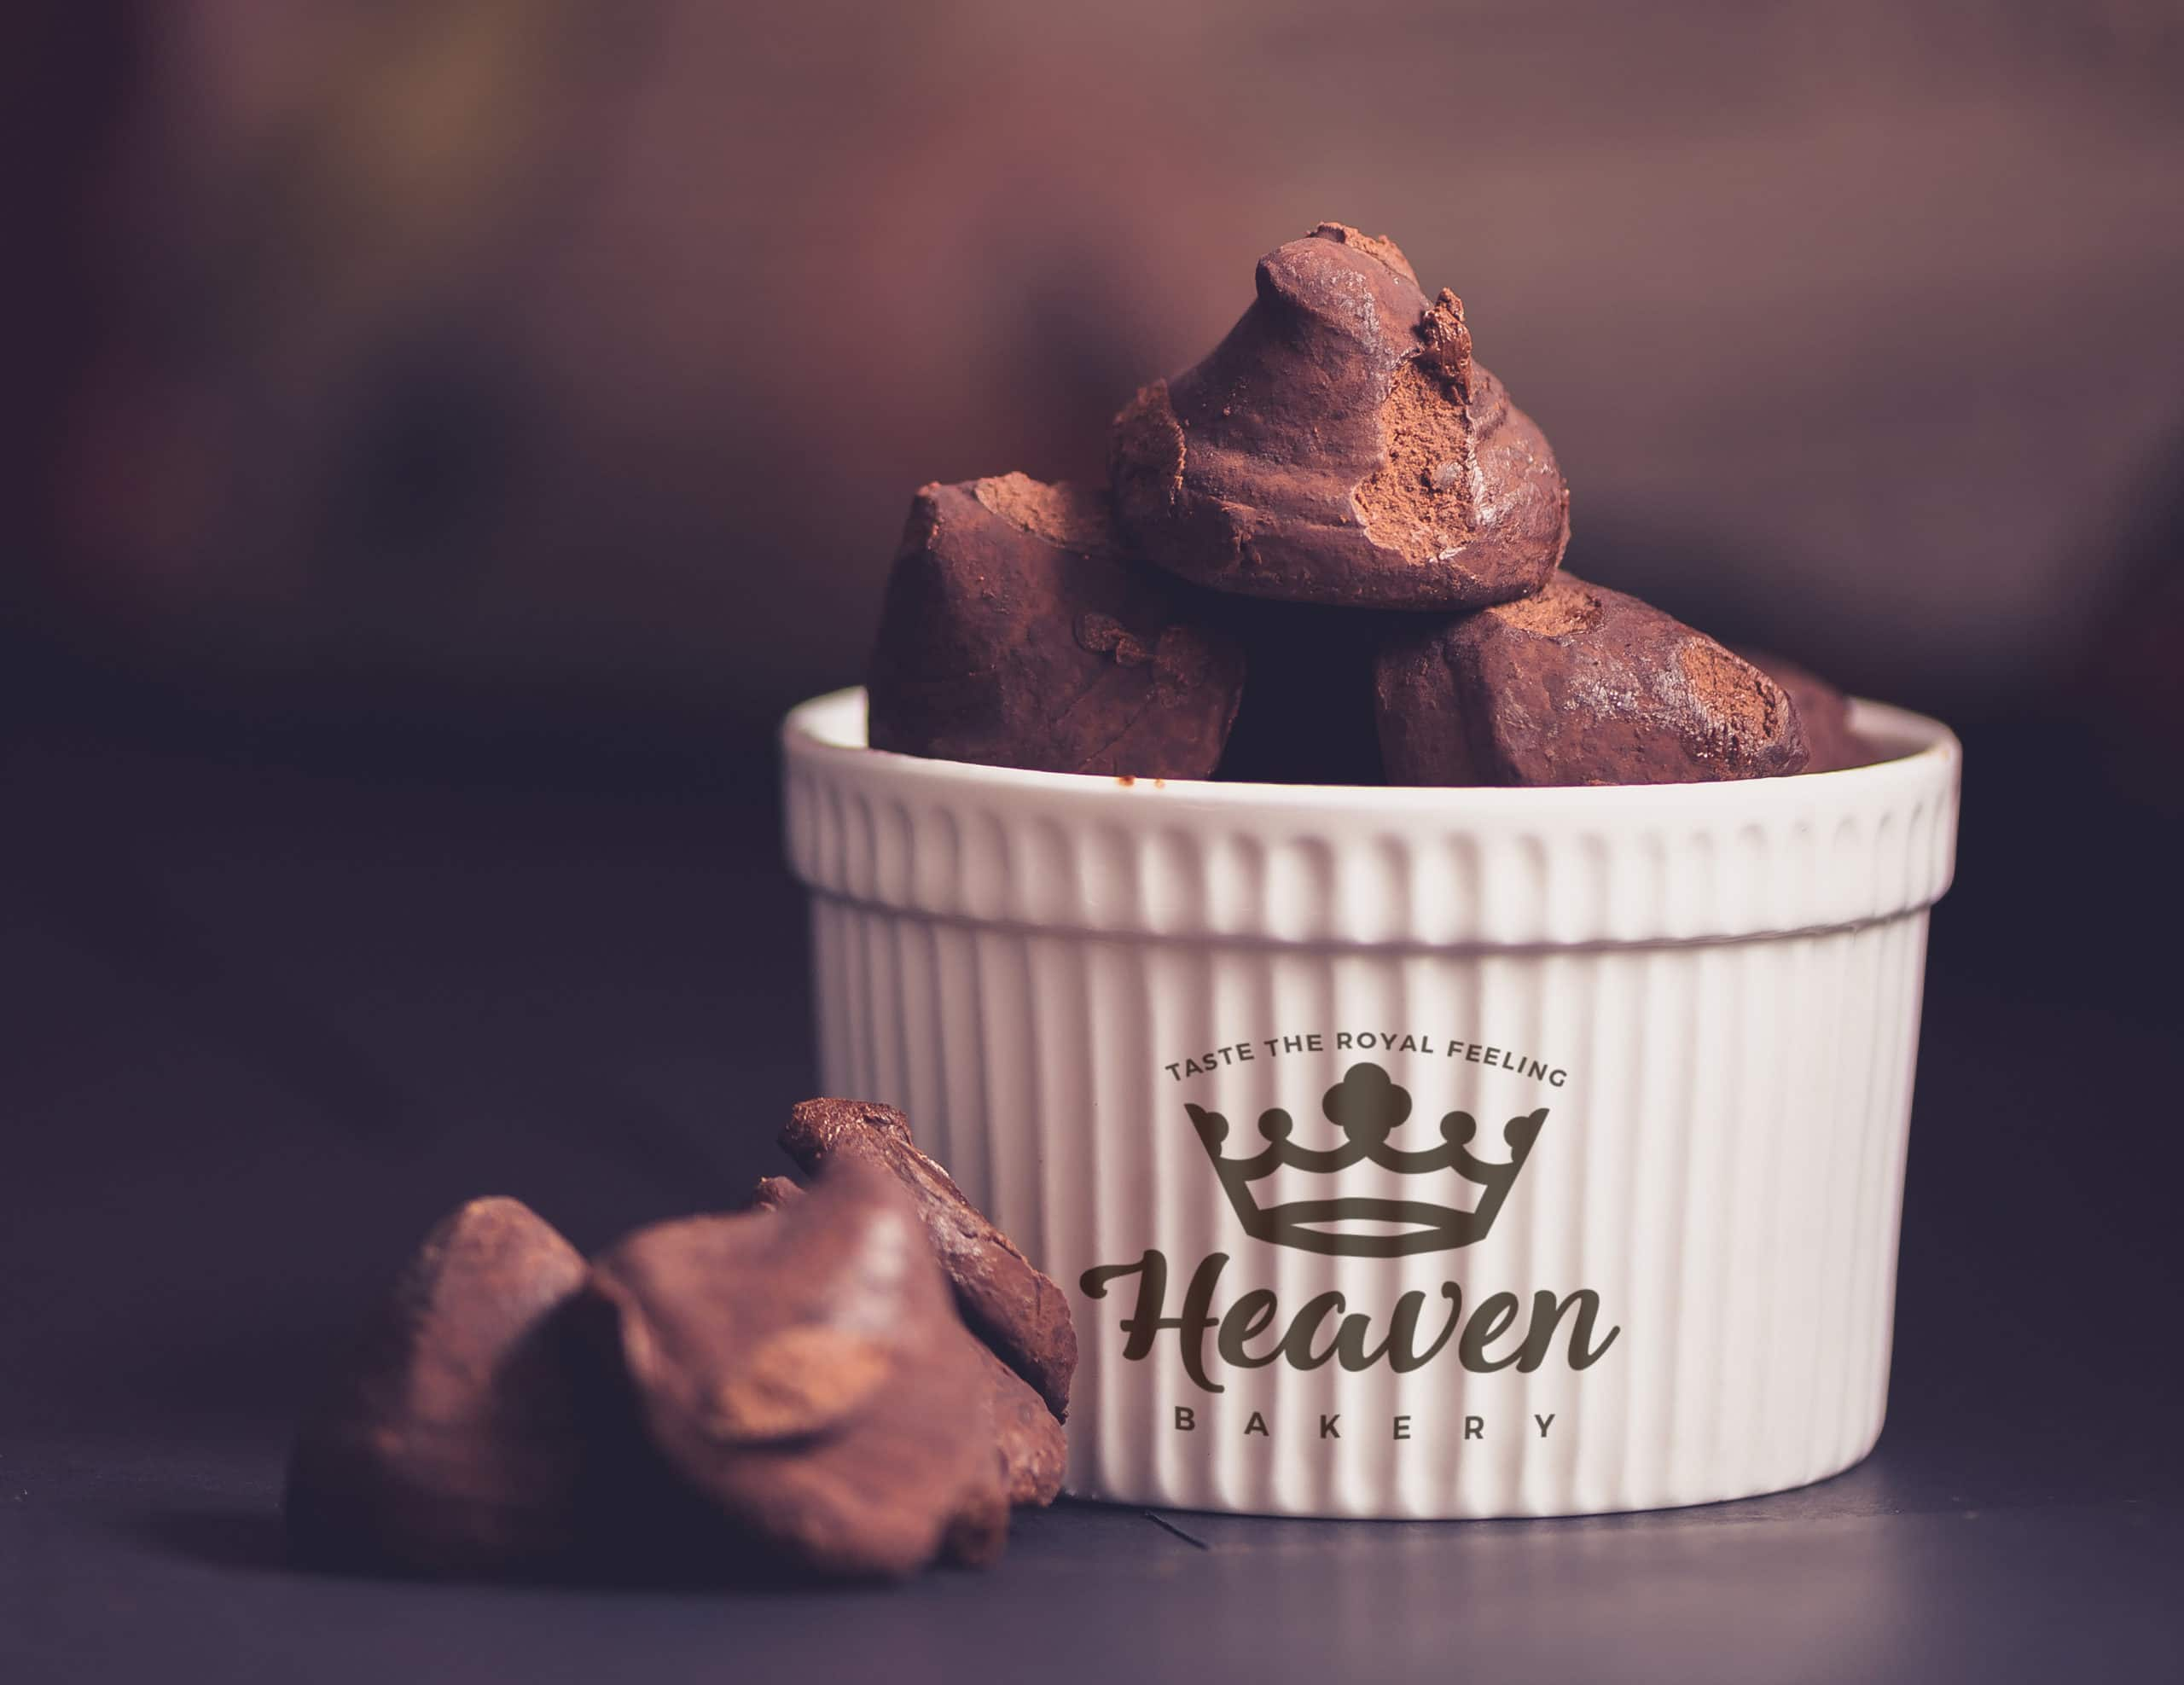 porcelain container with chocolate truffles PSD mockup